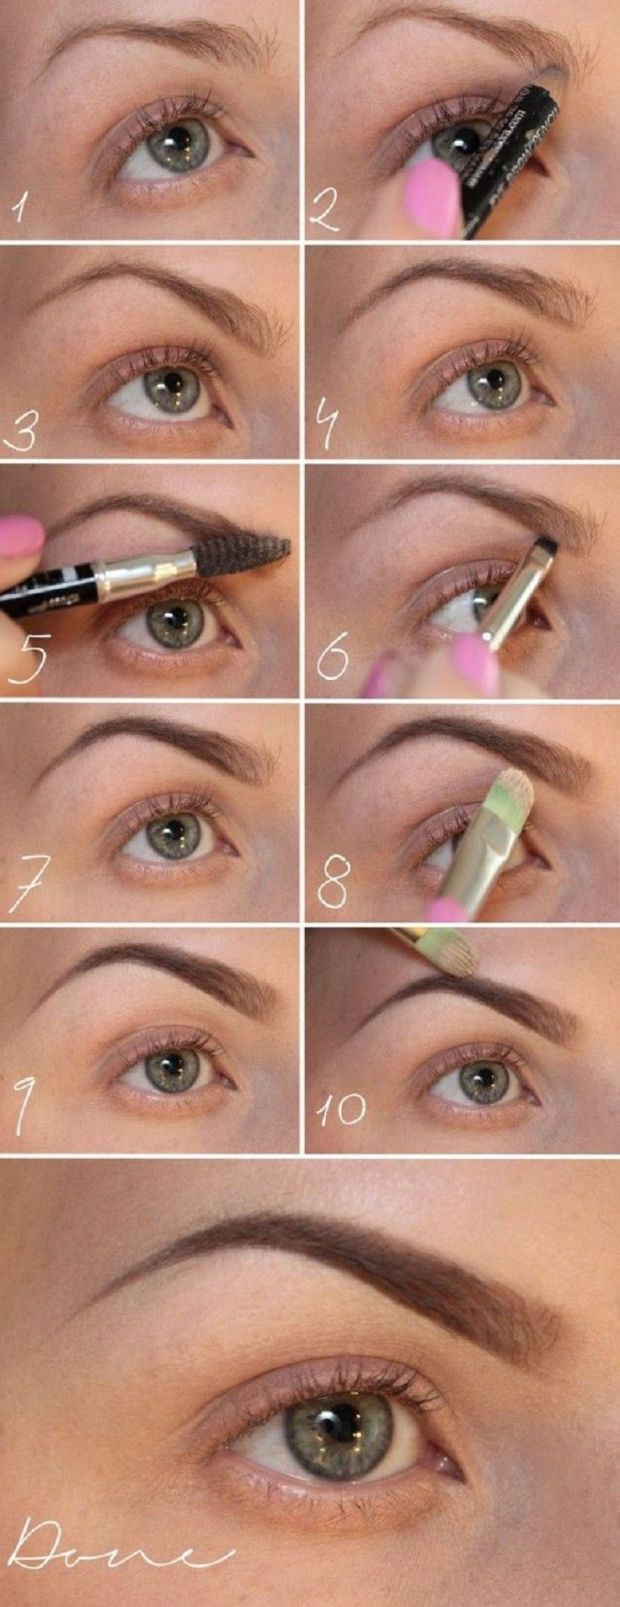 Steps to shape Eyebrows perfectly